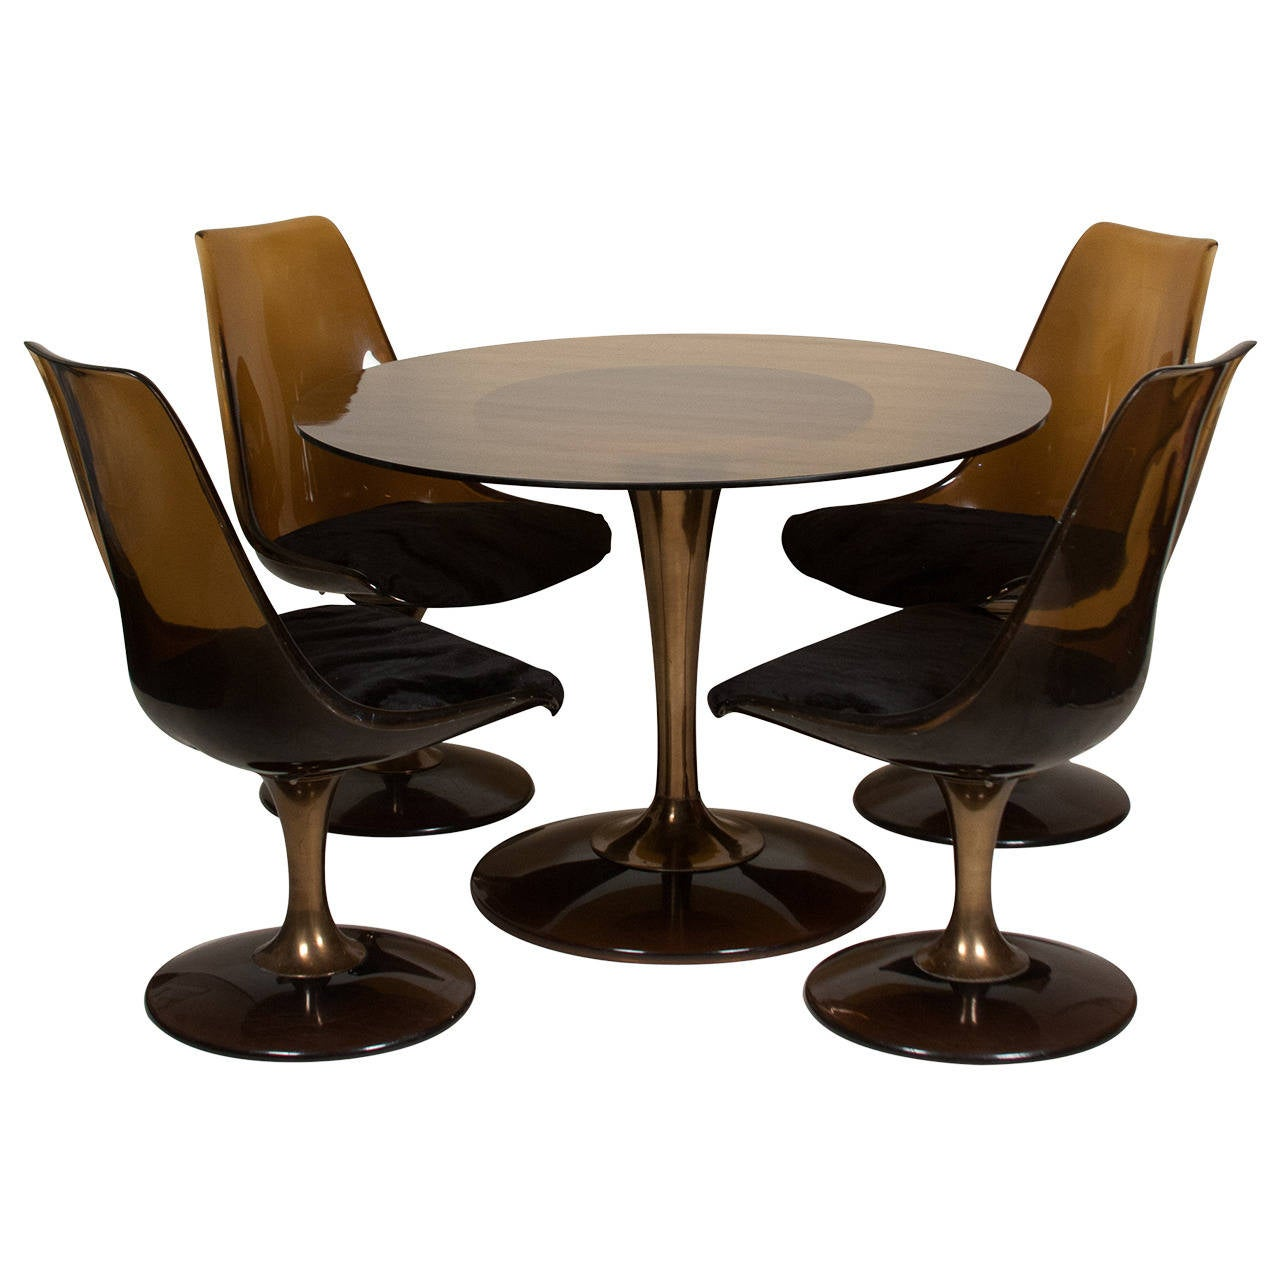 Amber glass top tulip dining table and chairs for sale at